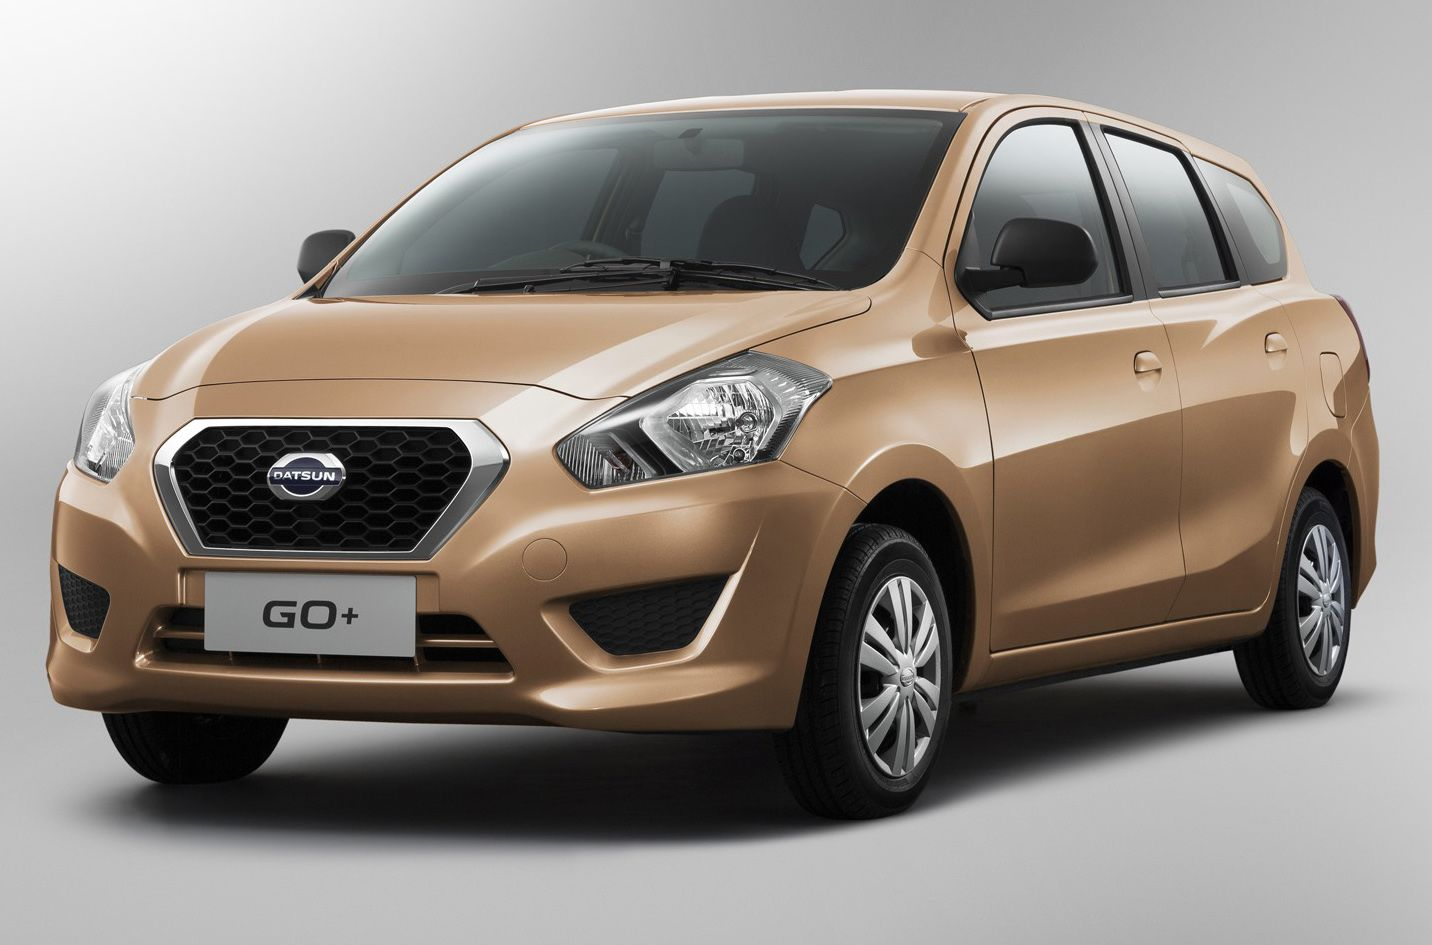 Nissan Datsun Go Plus Launch Date In India 2014 Price And Specifications Of Nissan Mpv Car Datsun Datsun Car Upcoming Cars